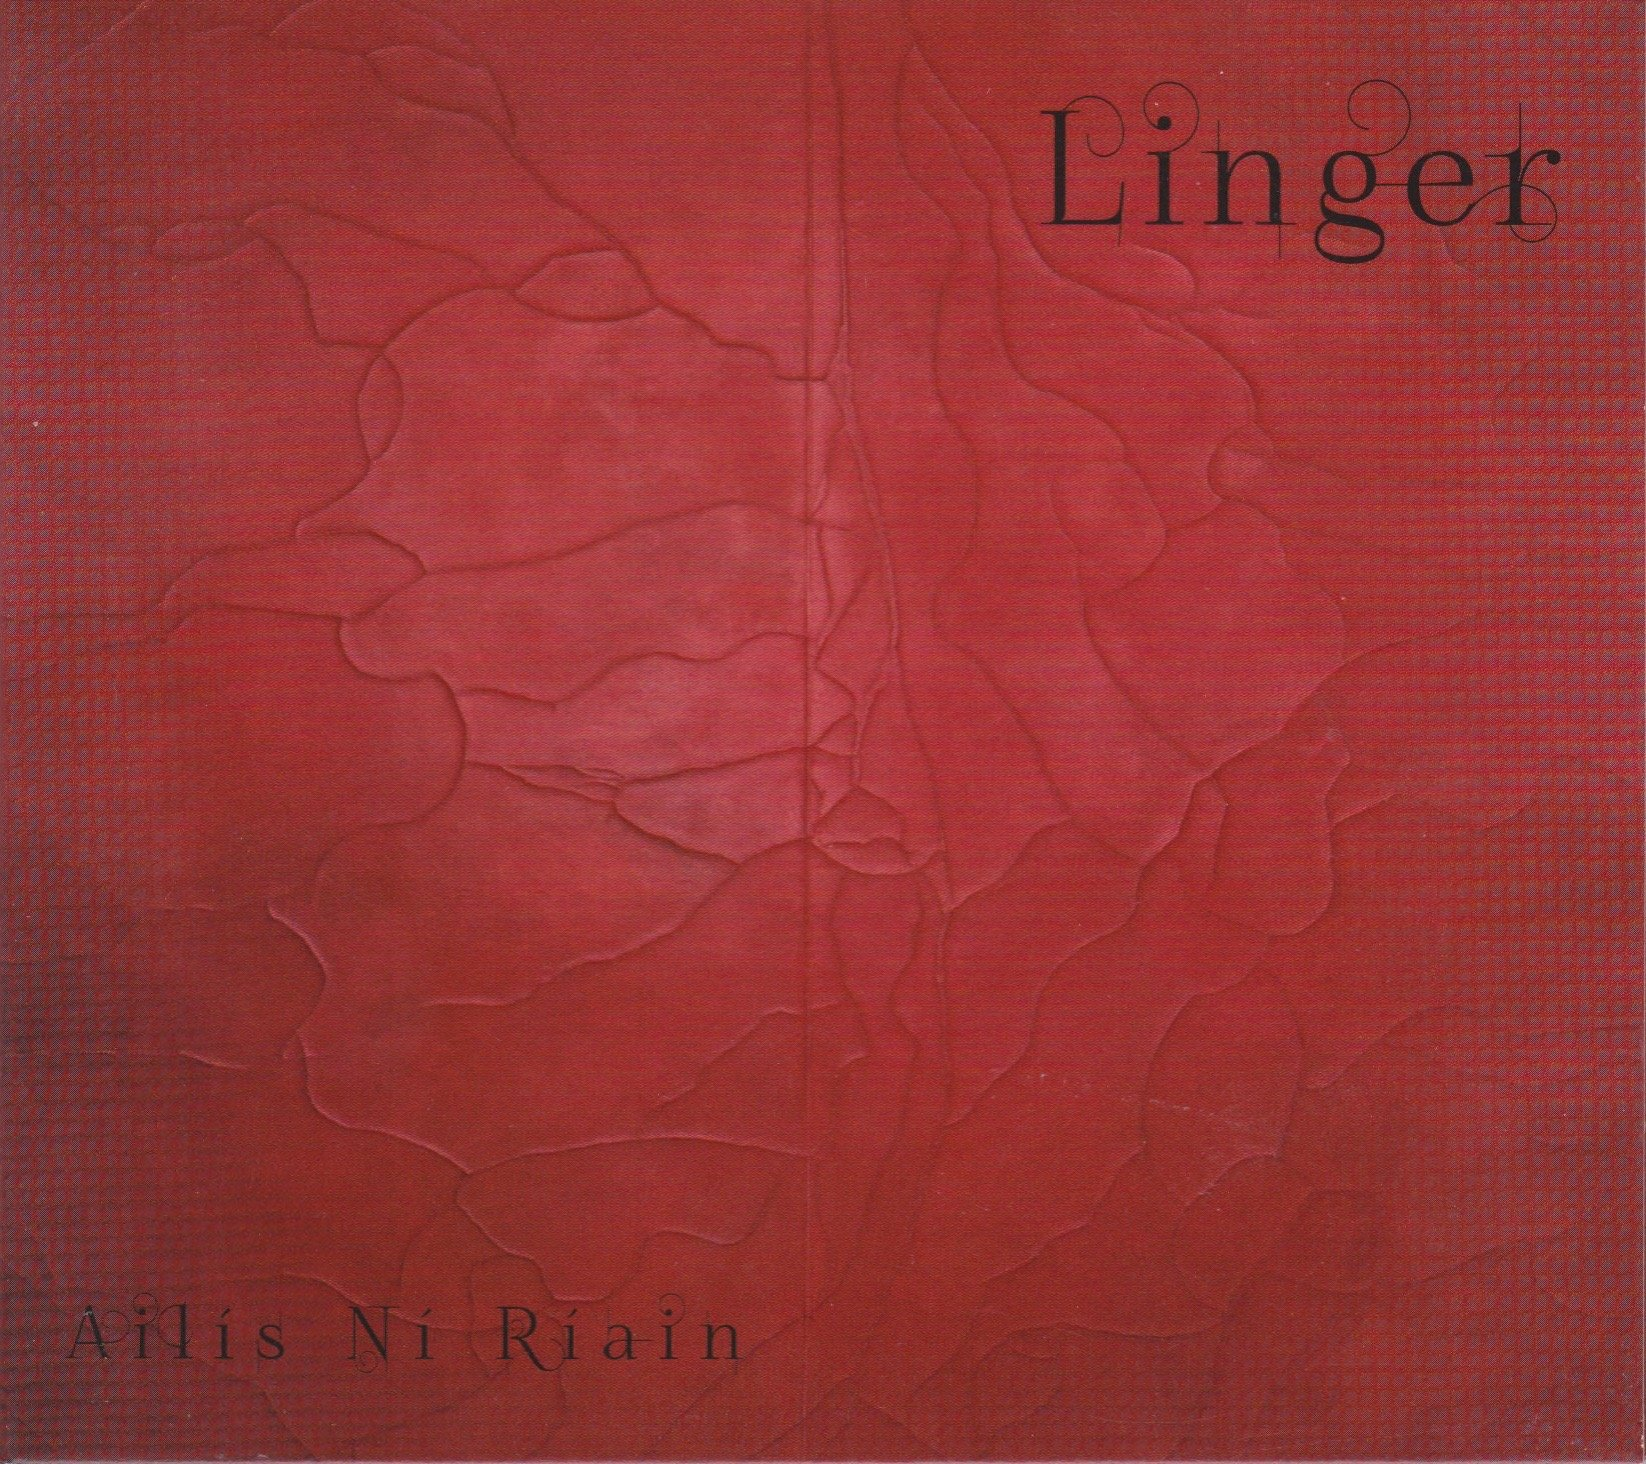 CD cover of Linger